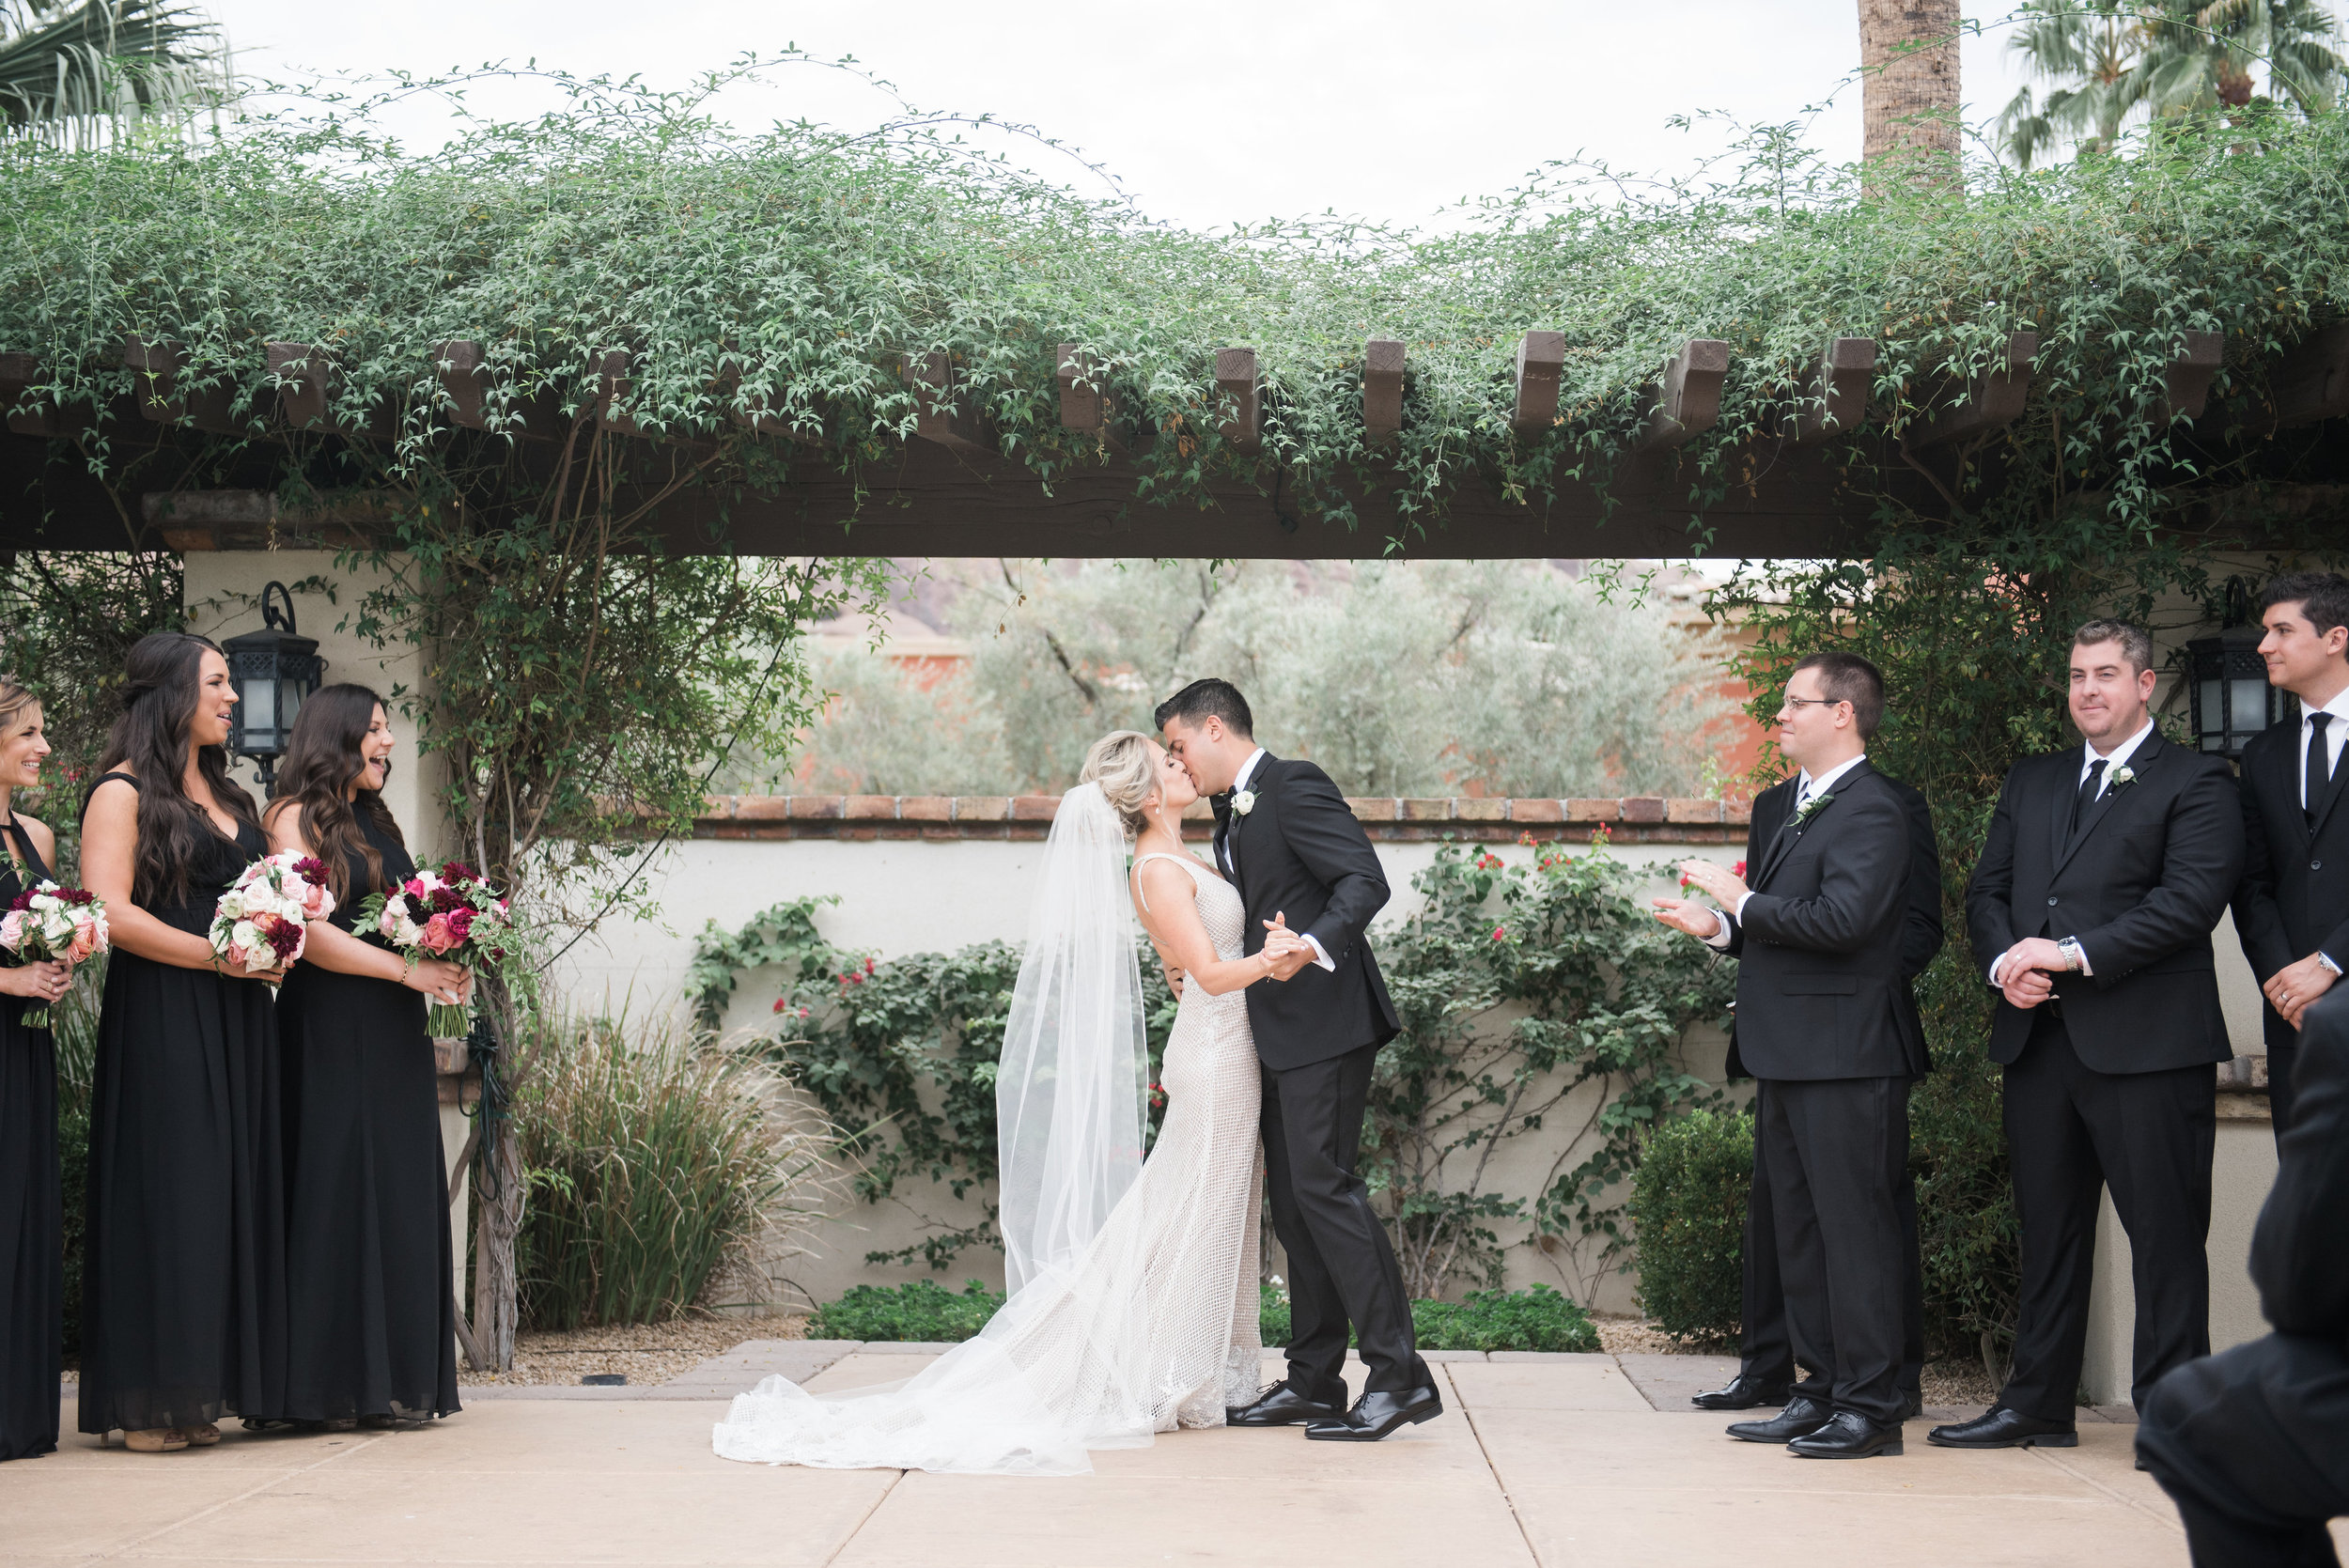 An Emotional Black Tie Wedding in Paradise Valley, Arizona featured on The Black Tie Bride: Brittany & Nick- Konsider It Done- AZ Arizona Wedding & Event Planner, Designer, Coordinator Planning in Scottsdale, Phoenix, Paradise Valley, Tempe, Gilbert, Mesa, Chandler, Tucson, Sedona